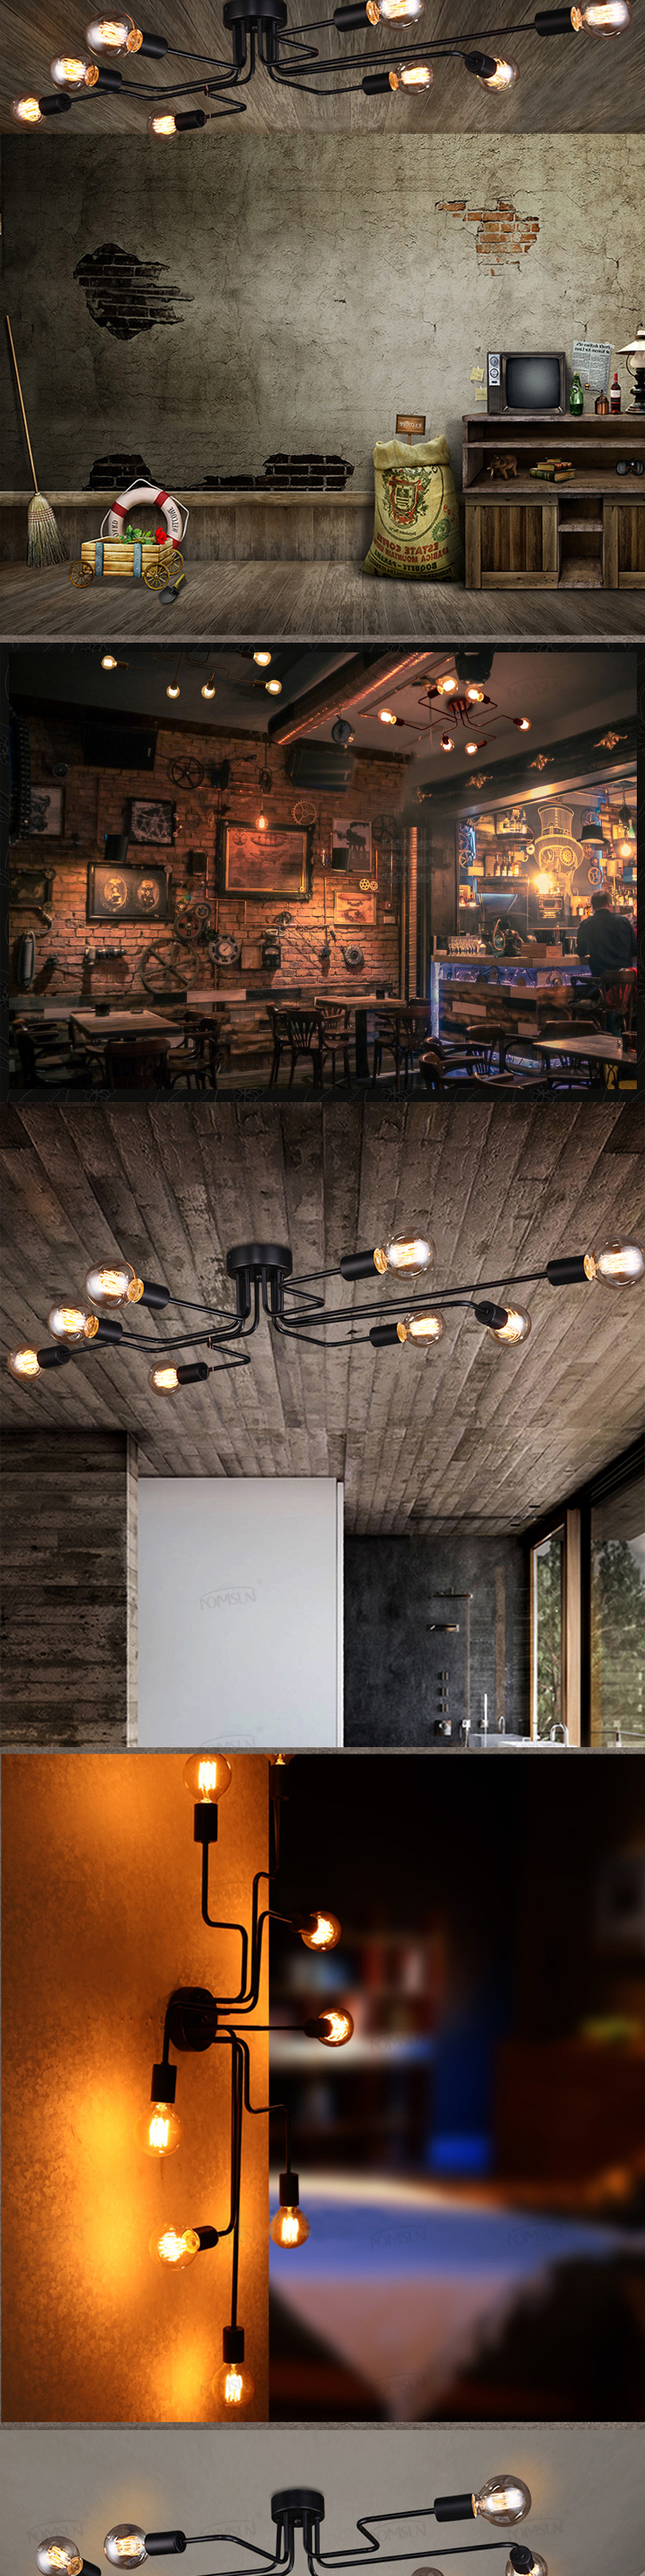 H02324d8a5c2c4820b0f9df13f9ffa207U vintage ceiling lights 8 heads retro industrial lamparas de techo restaurant loft modern ceiling lamp bar cafe dining room light